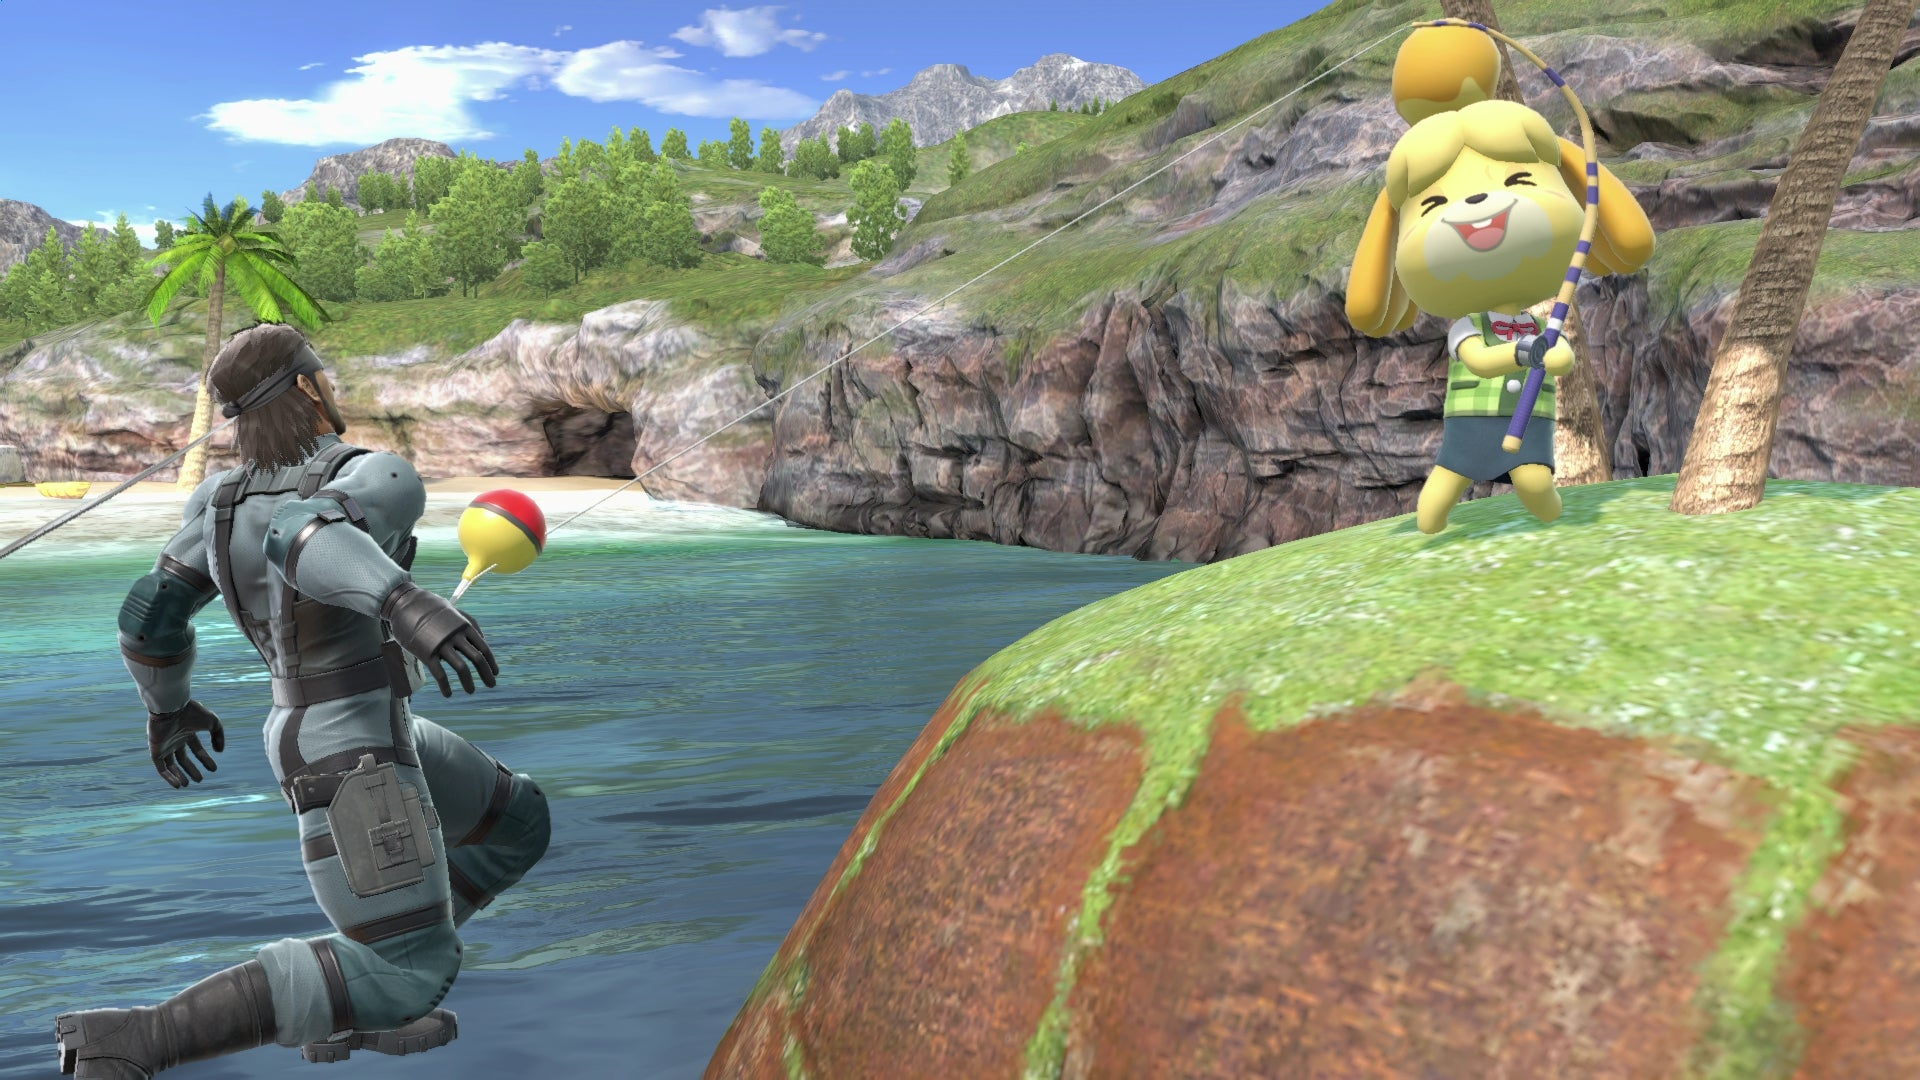 Isabelle Player Proves She Can Take Solid Snake In Super Smash Bros. Ultimate Upset